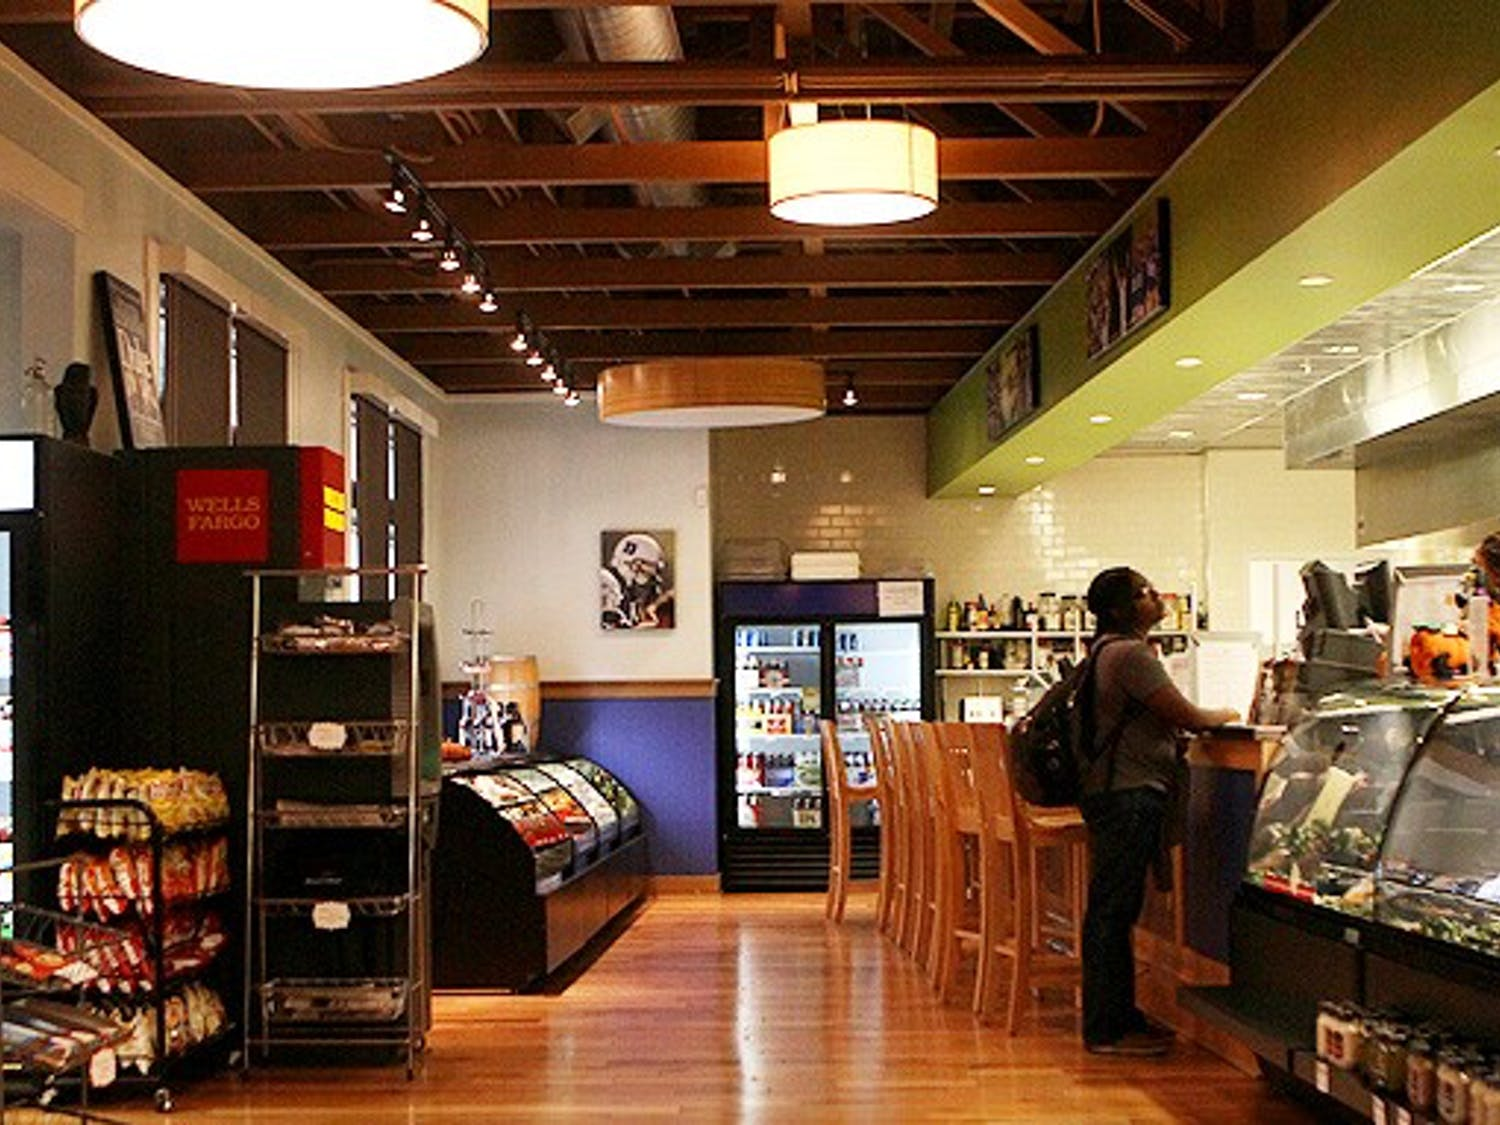 The Food Factory, which replaced Devil's Bistro this year, has experienced low student turnout since the Fall semester began.